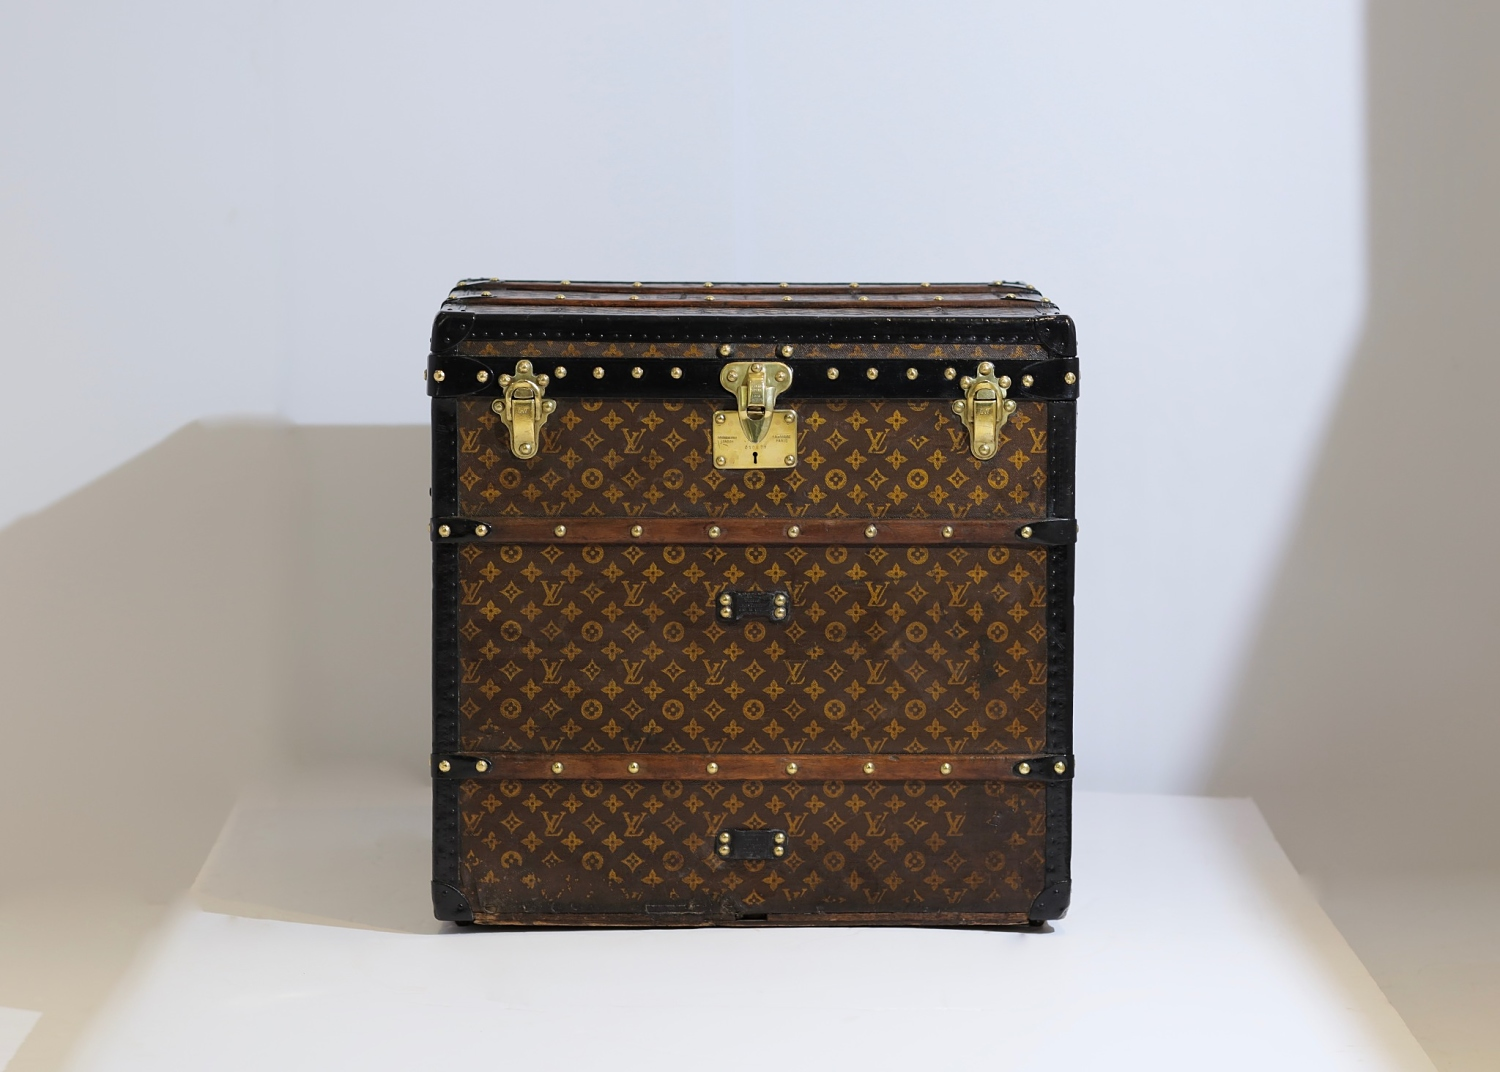 the-well-traveled-trunk-louis-vuitton-thumbnail-product-5666-1